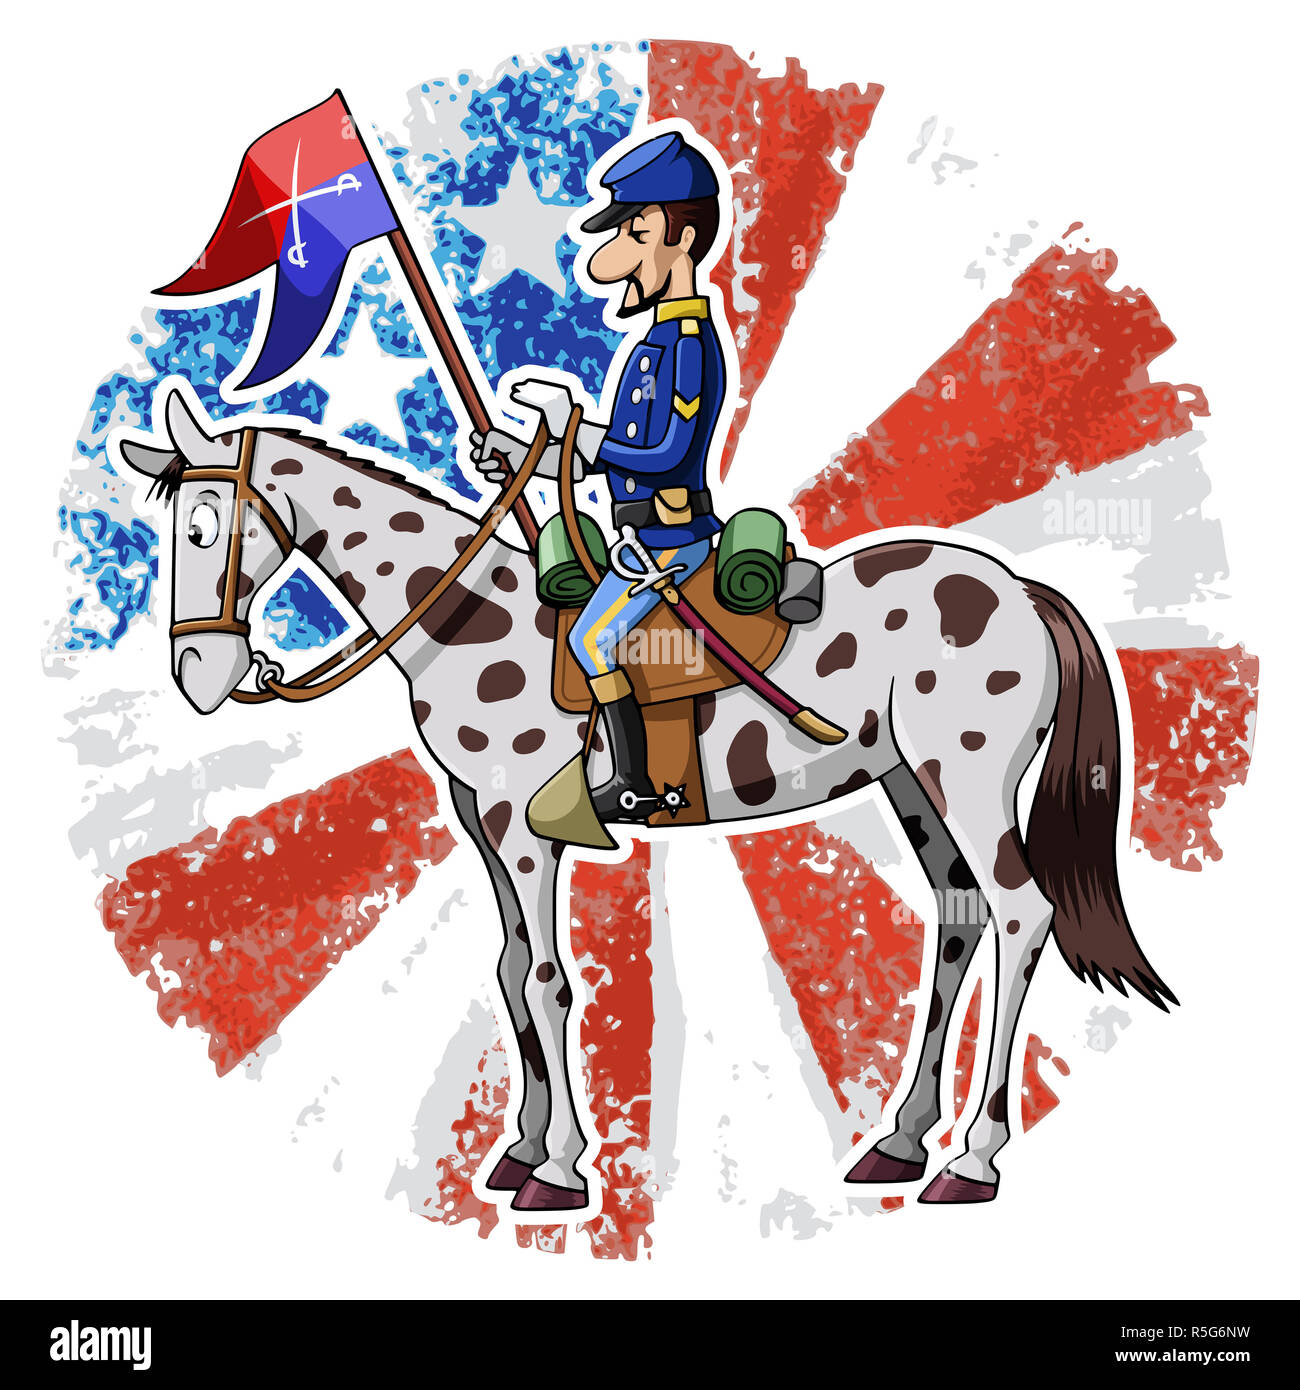 Cartoon-style illustration: United States Cavalry soldier riding his horse. American grunge flag on the background - Stock Image